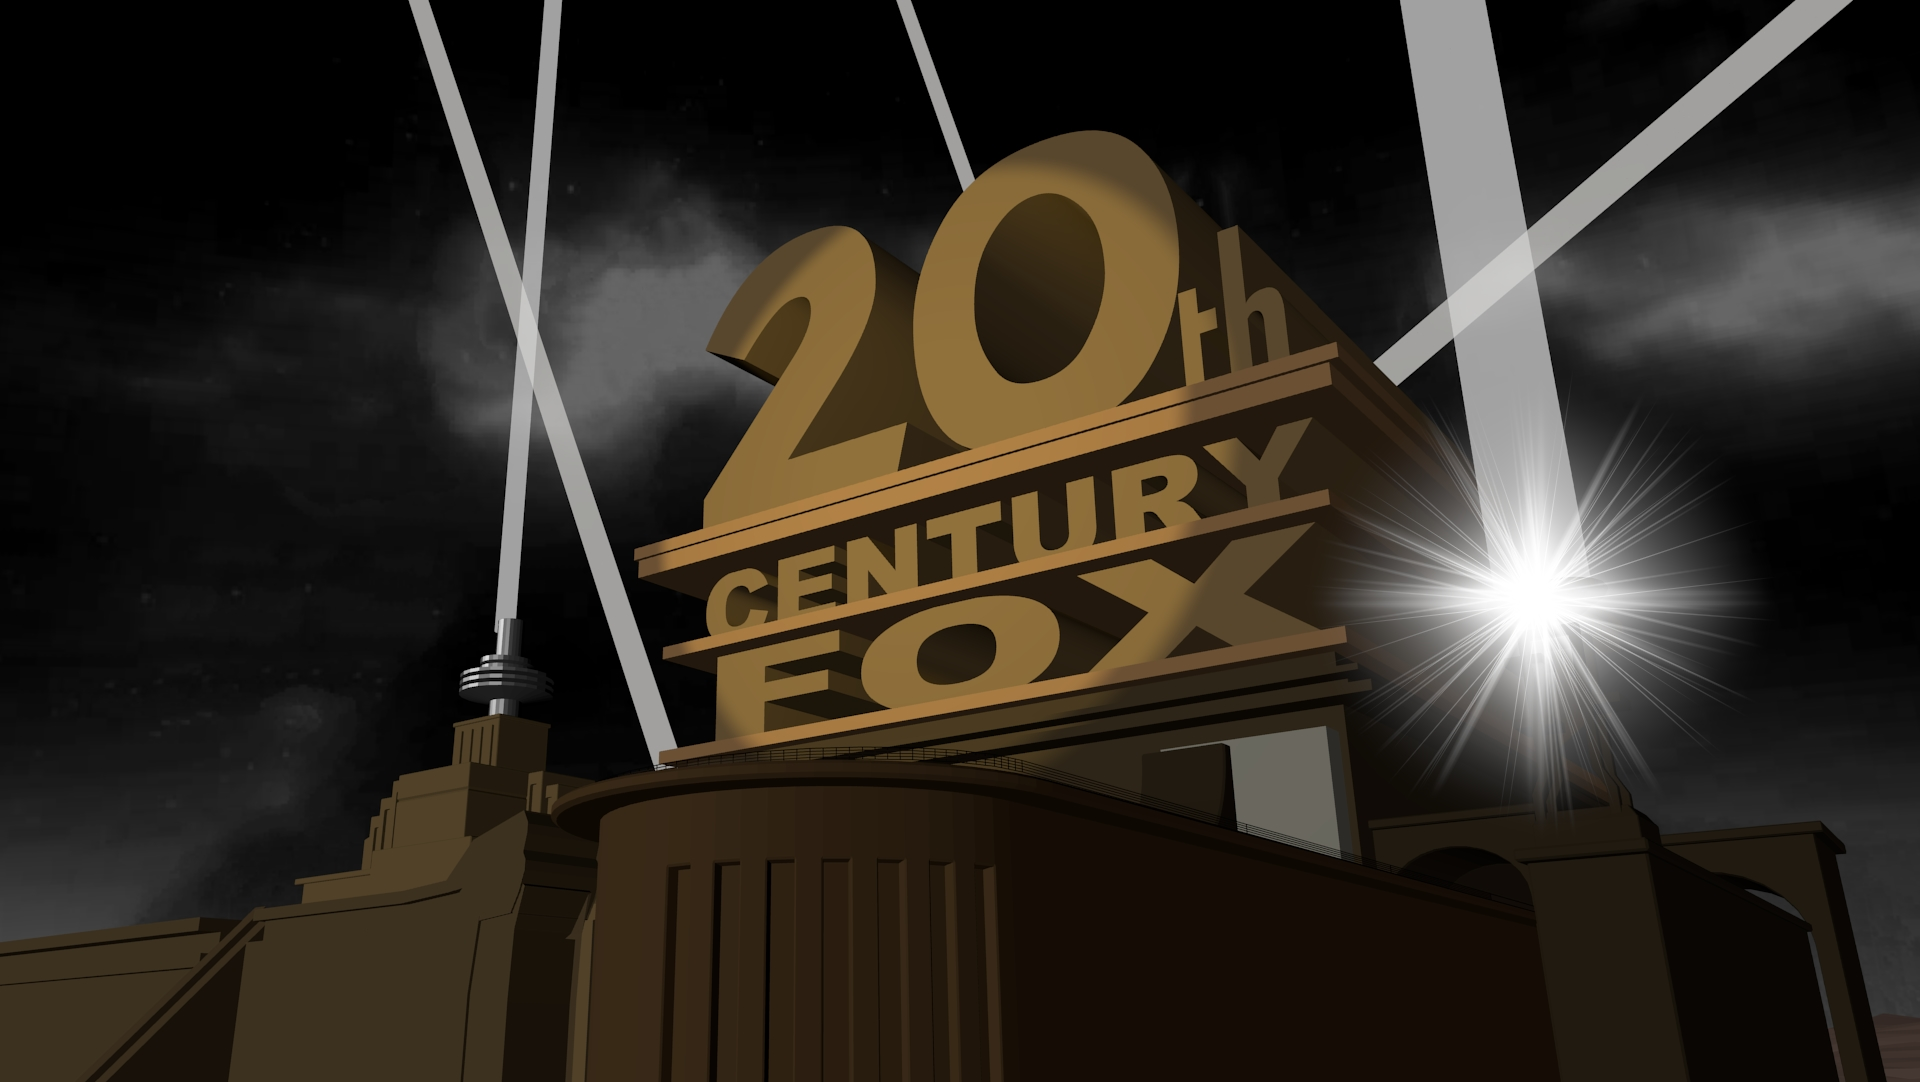 20th century in canada Pages in category 20th century in canada the following 12 pages are in this category, out of 12 total this list may not reflect recent changes (.